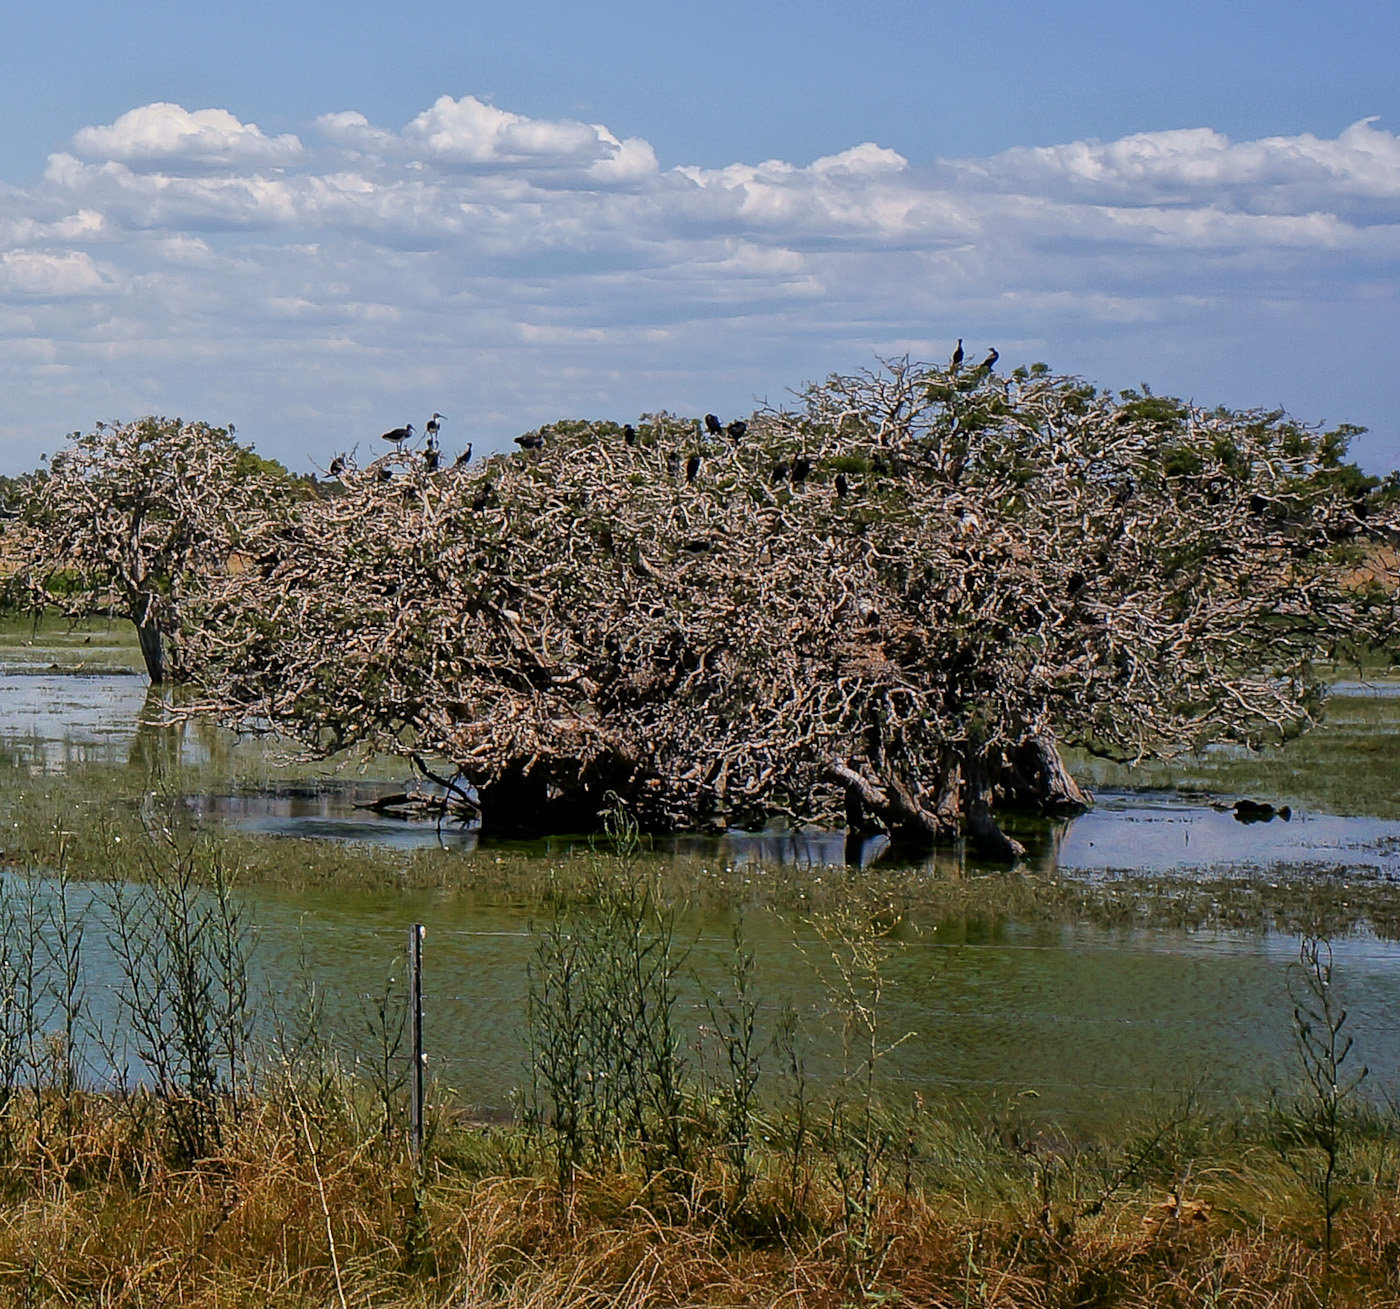 Weid trees in a swamp are home to dozens of ibises. Rockingham, WA. SOny NEX-5n, Elmarit-M 90/2.8